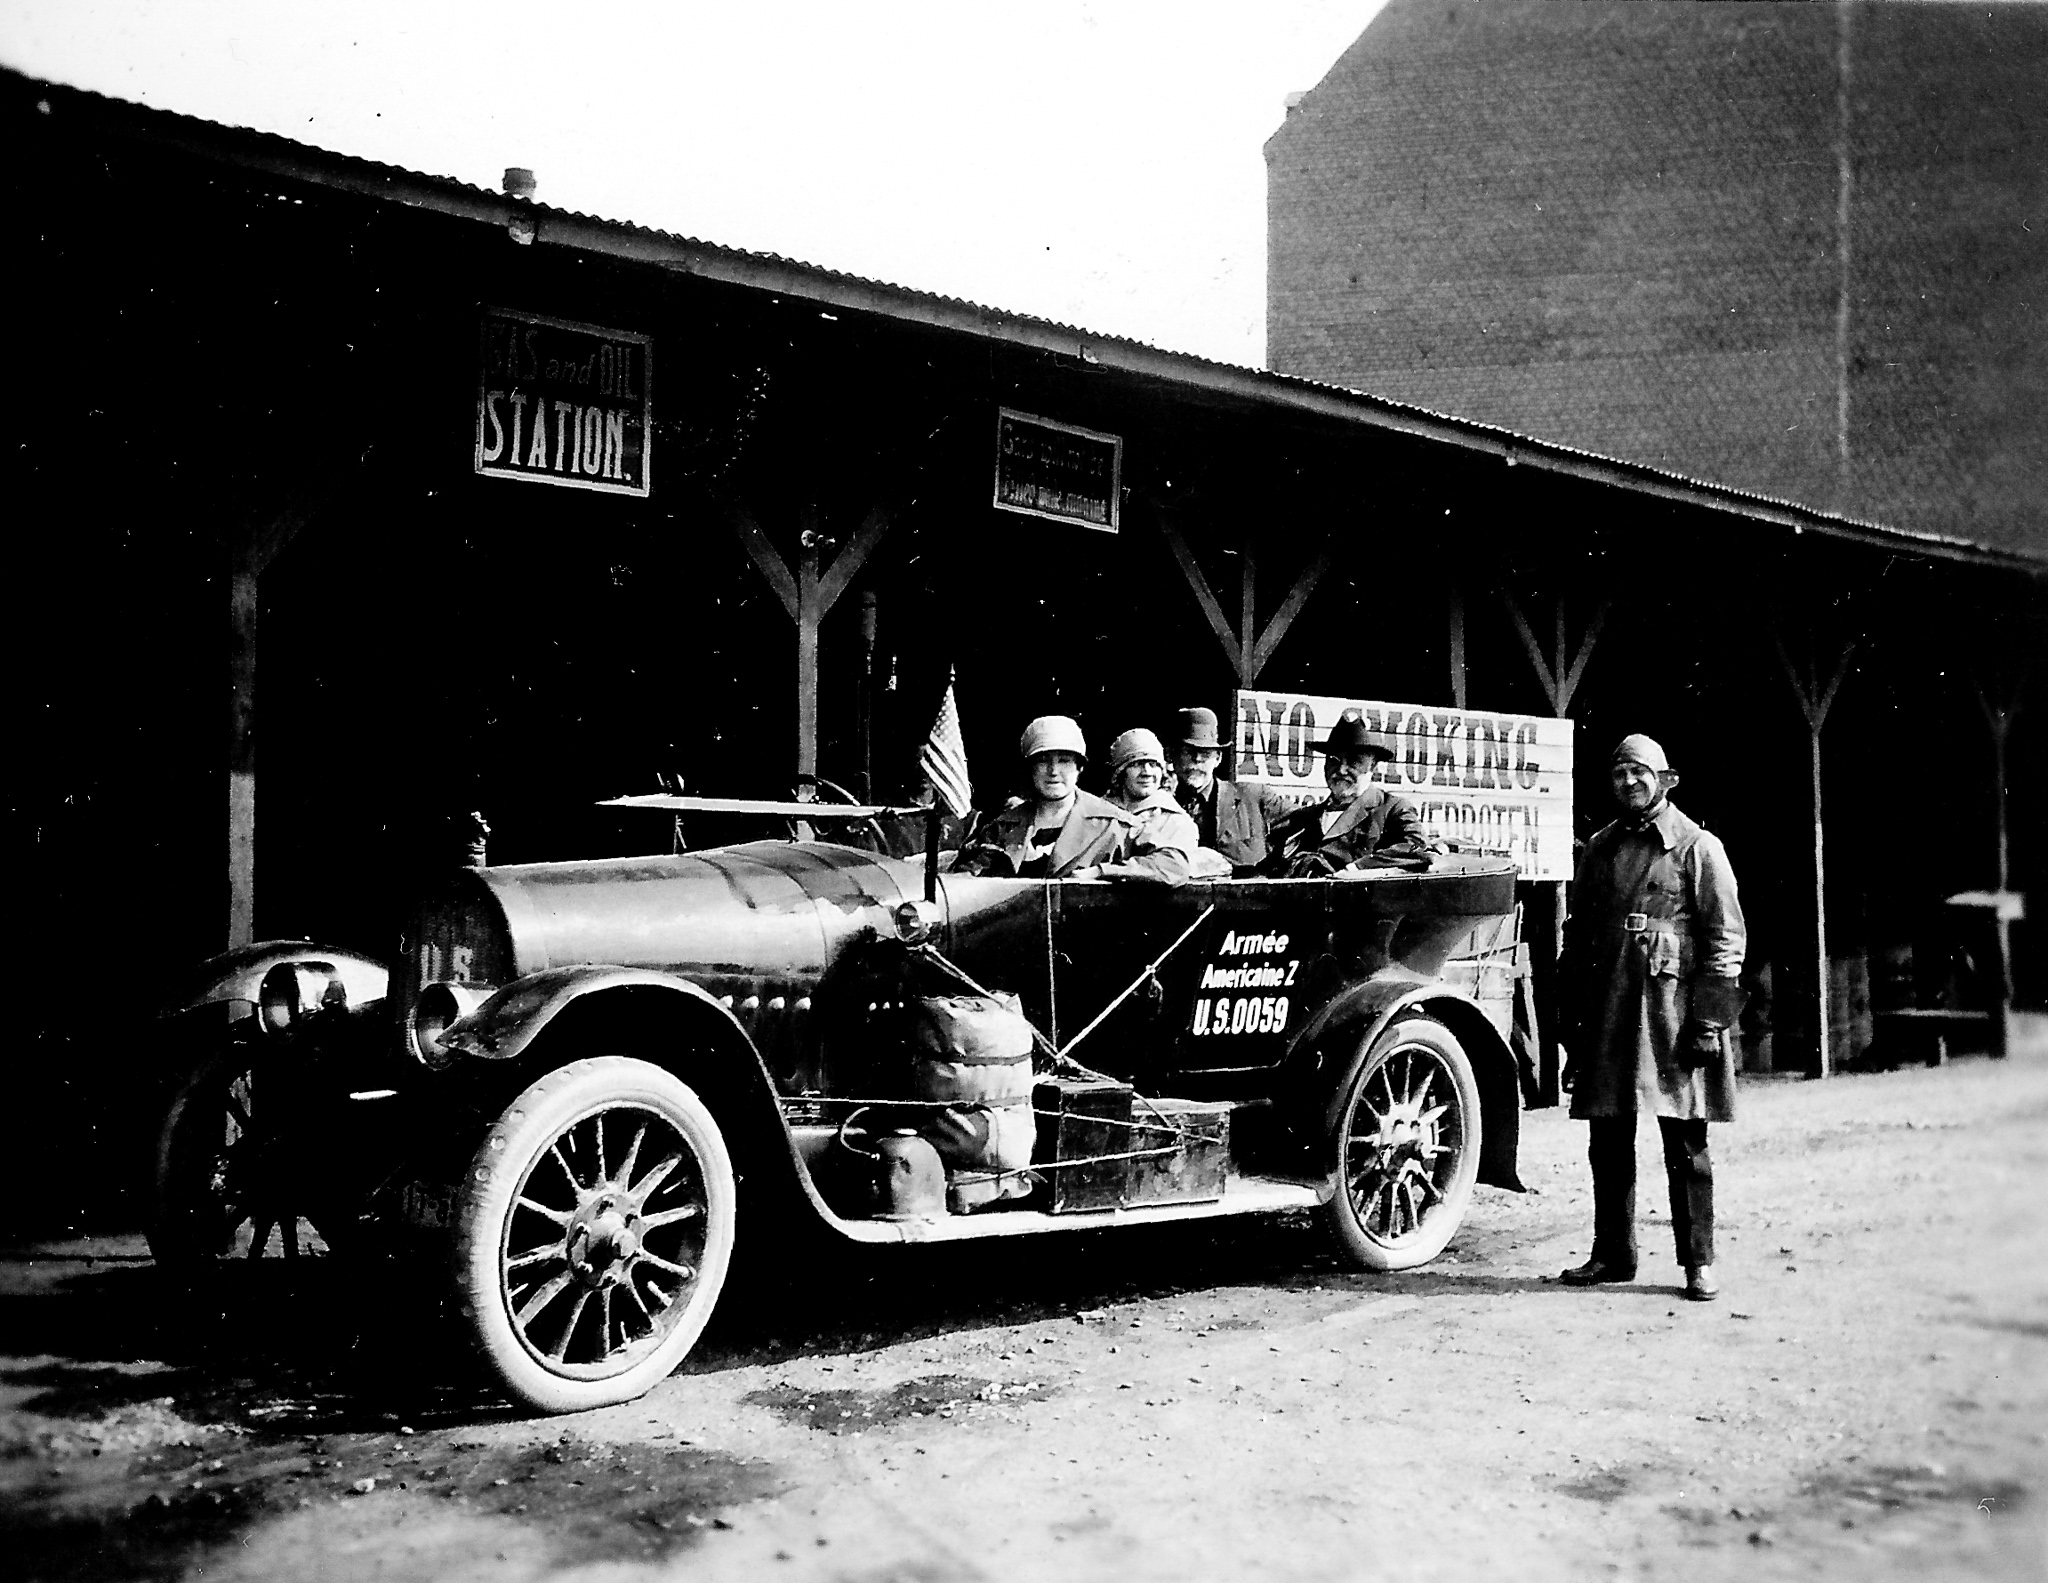 black and white photo of a 1920s car with passengers